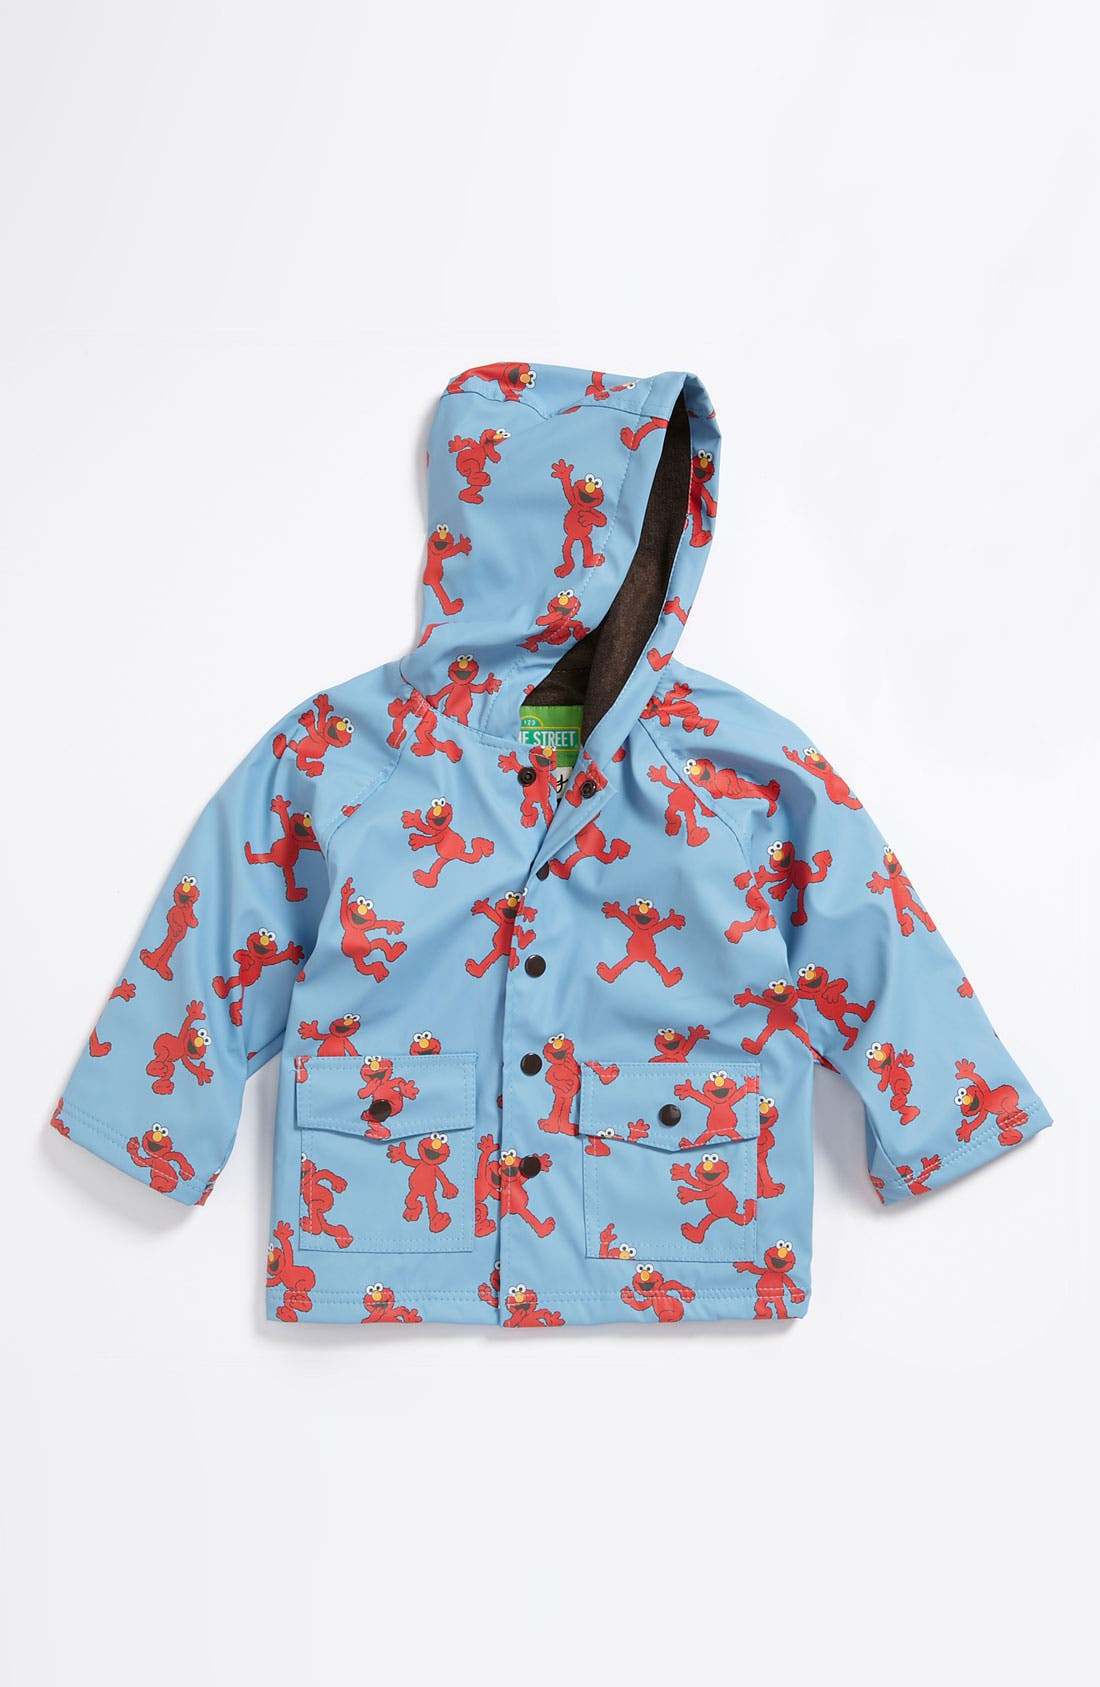 Alternate Image 1 Selected - Hatley 'Sesame Street® - Elmo' Raincoat (Toddler)